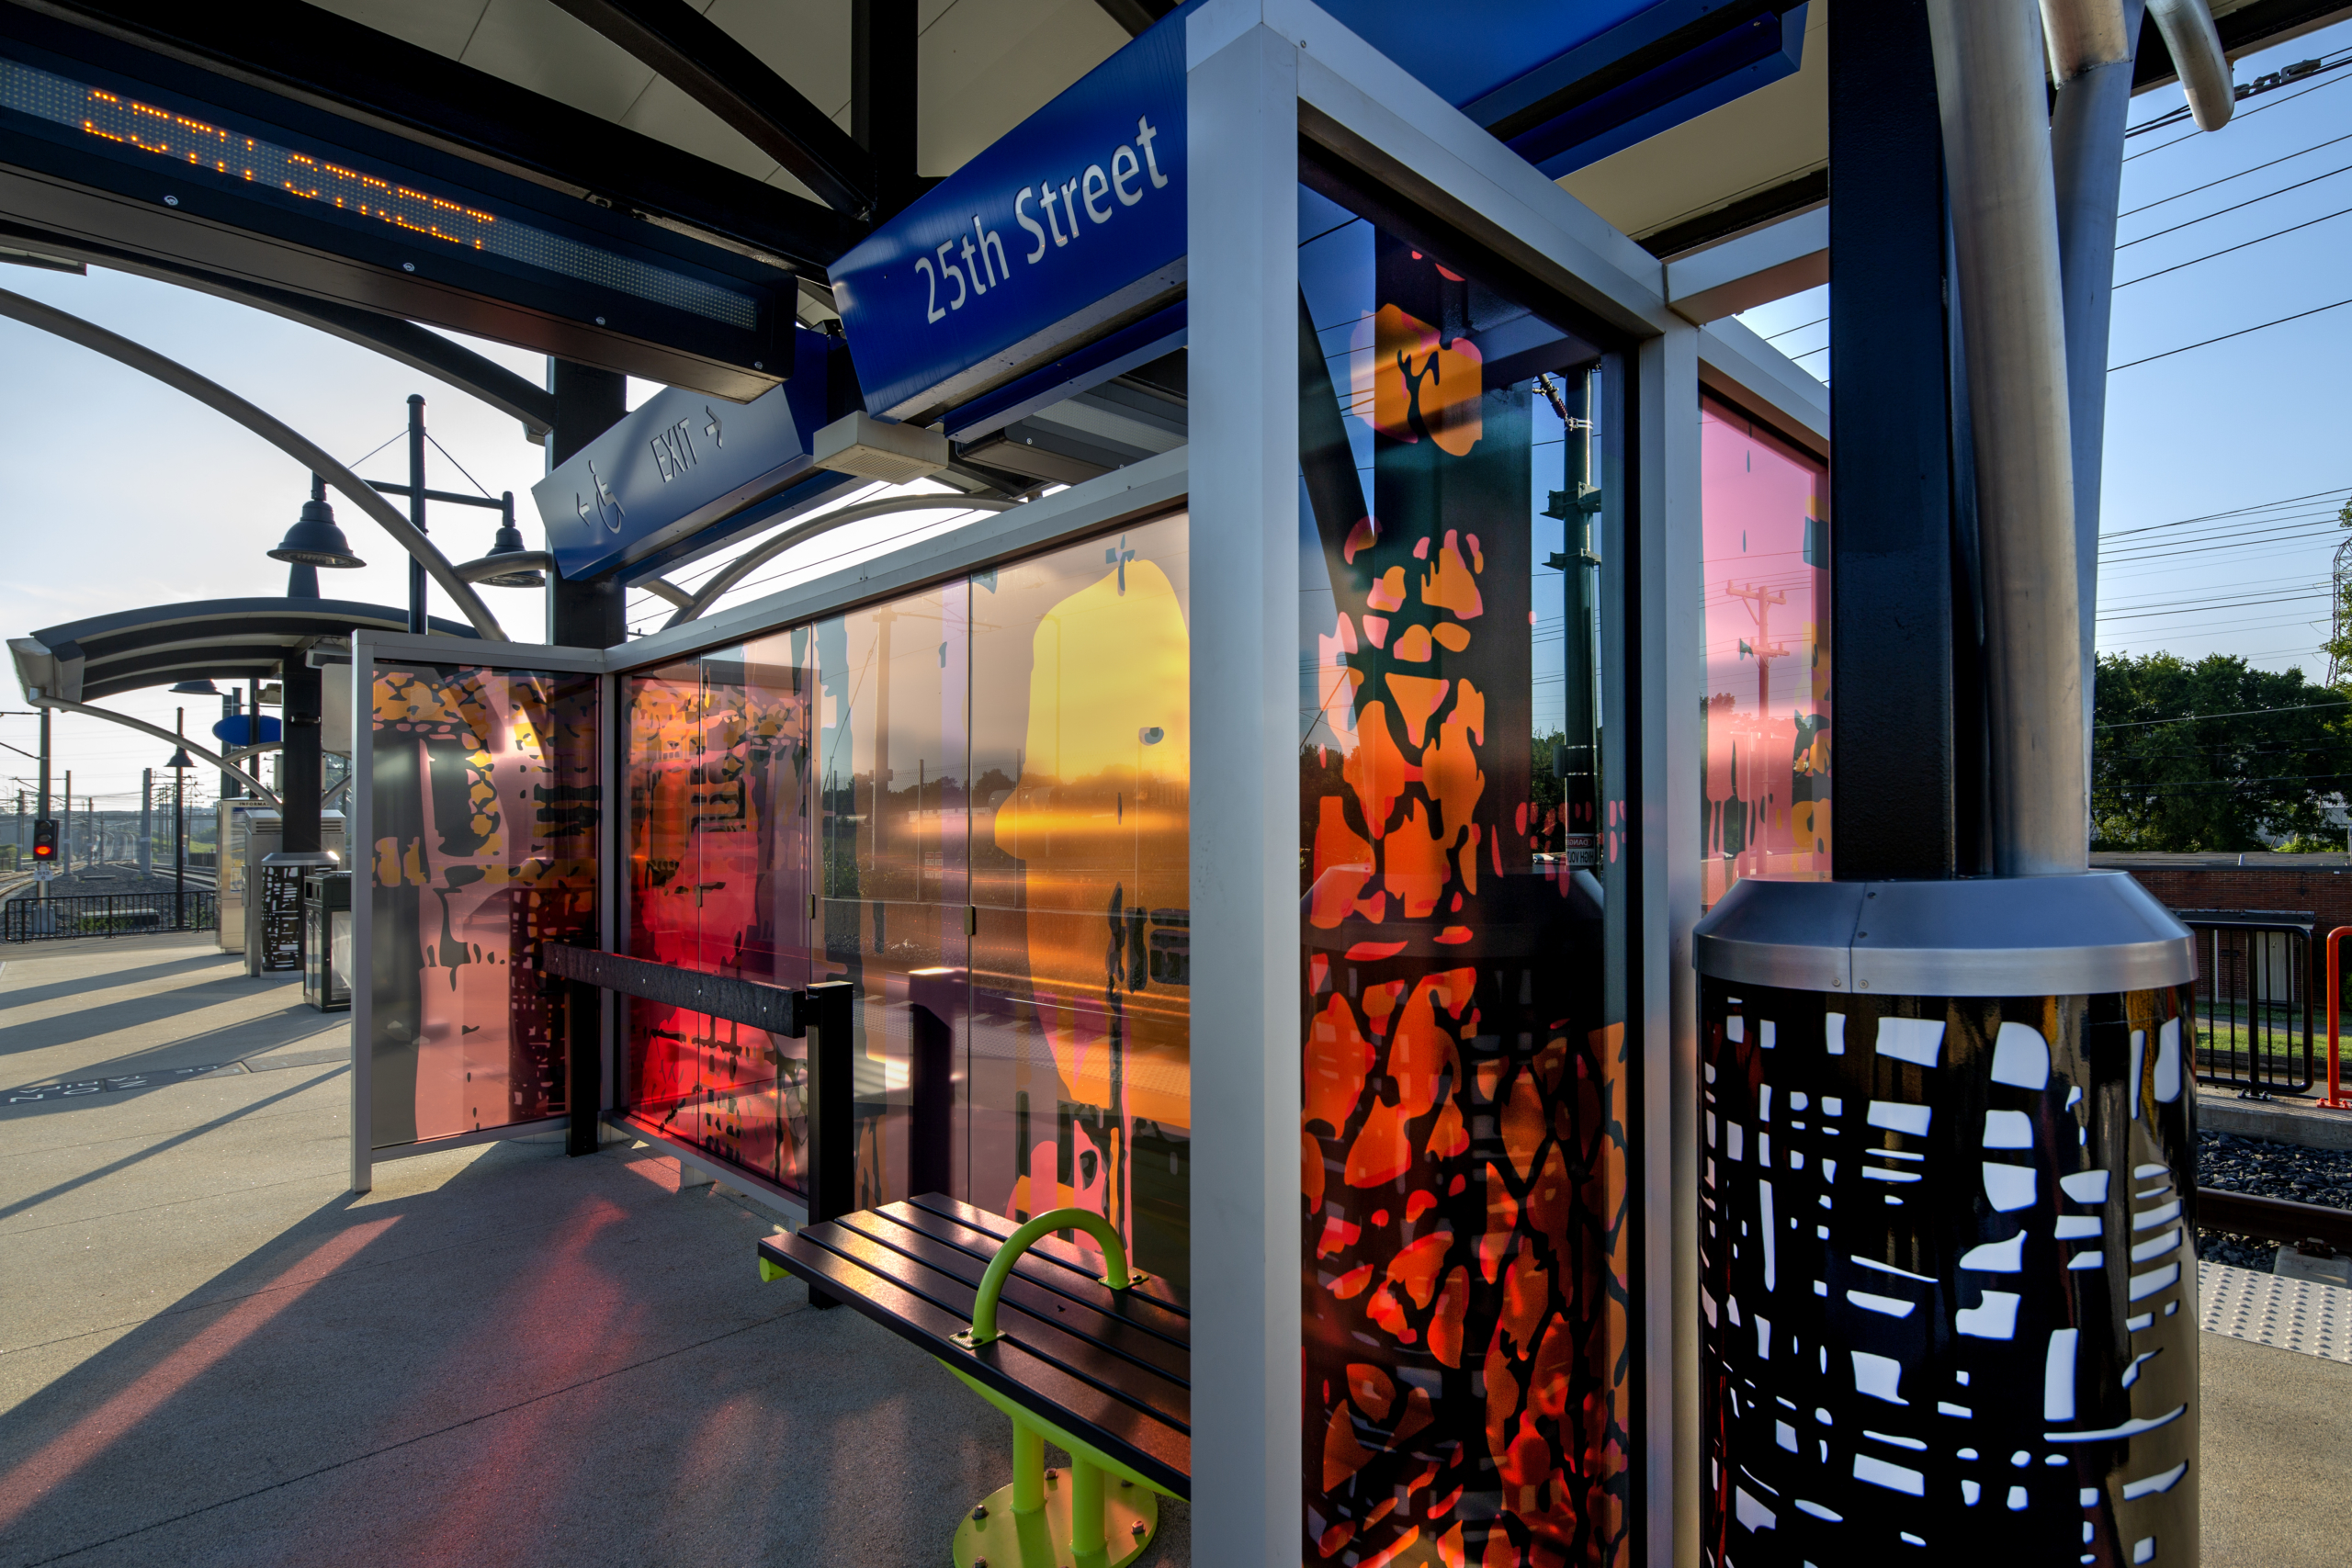 Glass windscreen with laminated black, pink, & orange patterns & human silhouettes as through a passing train window cast colorful shadows on the 25th St Station light rail platform. Canopy columns with b&w metal abstract designs complement the windscreen.